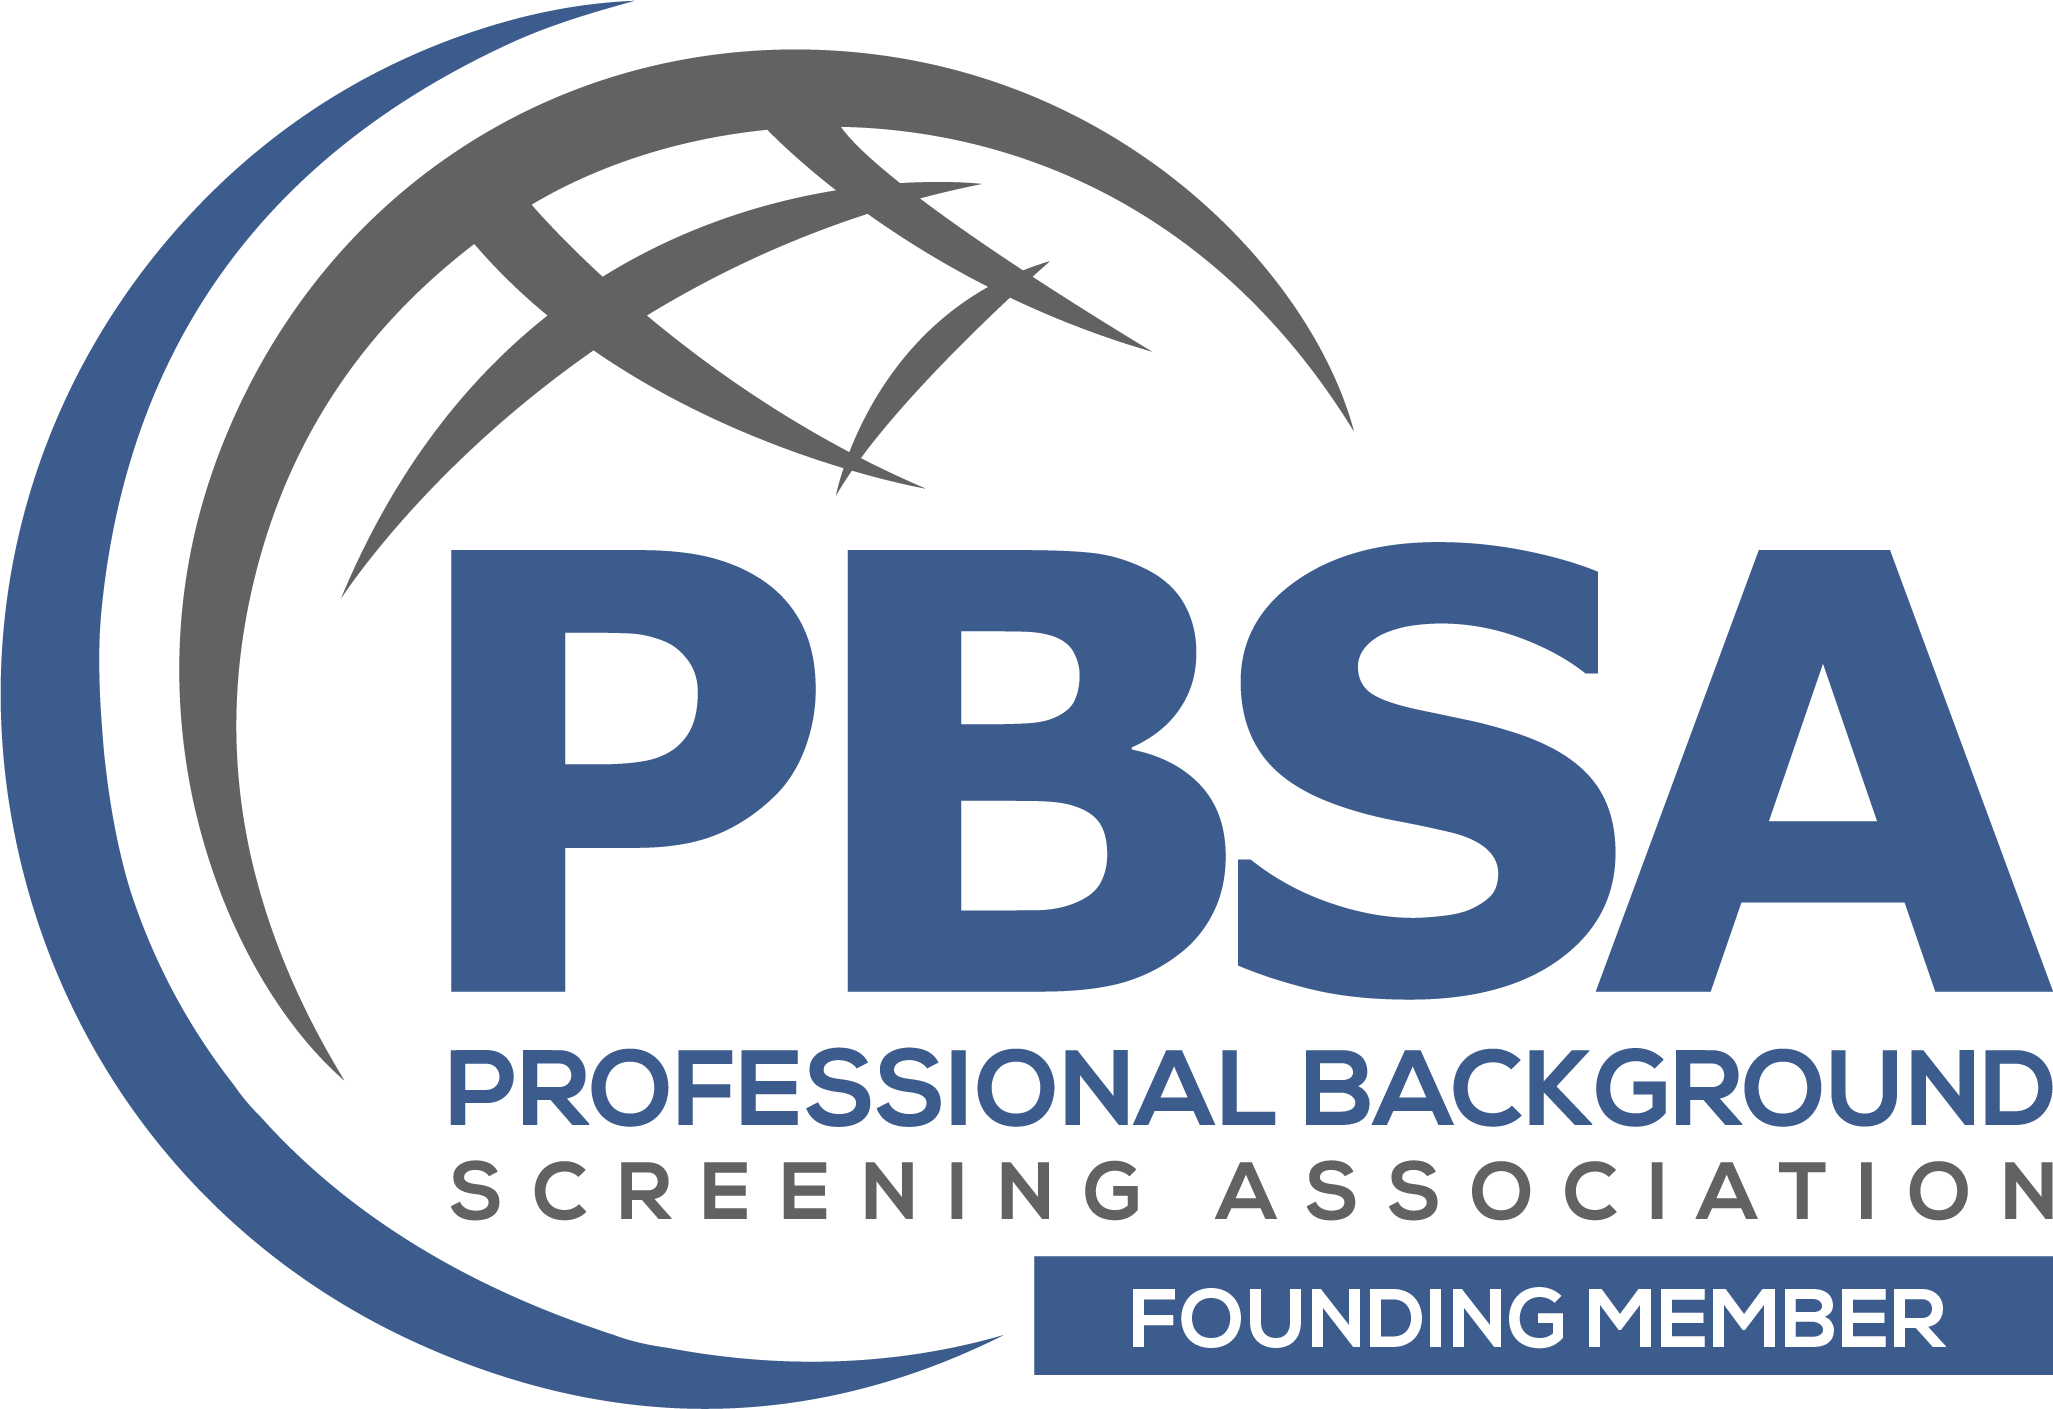 Professional Background Screening Association - Founding Member